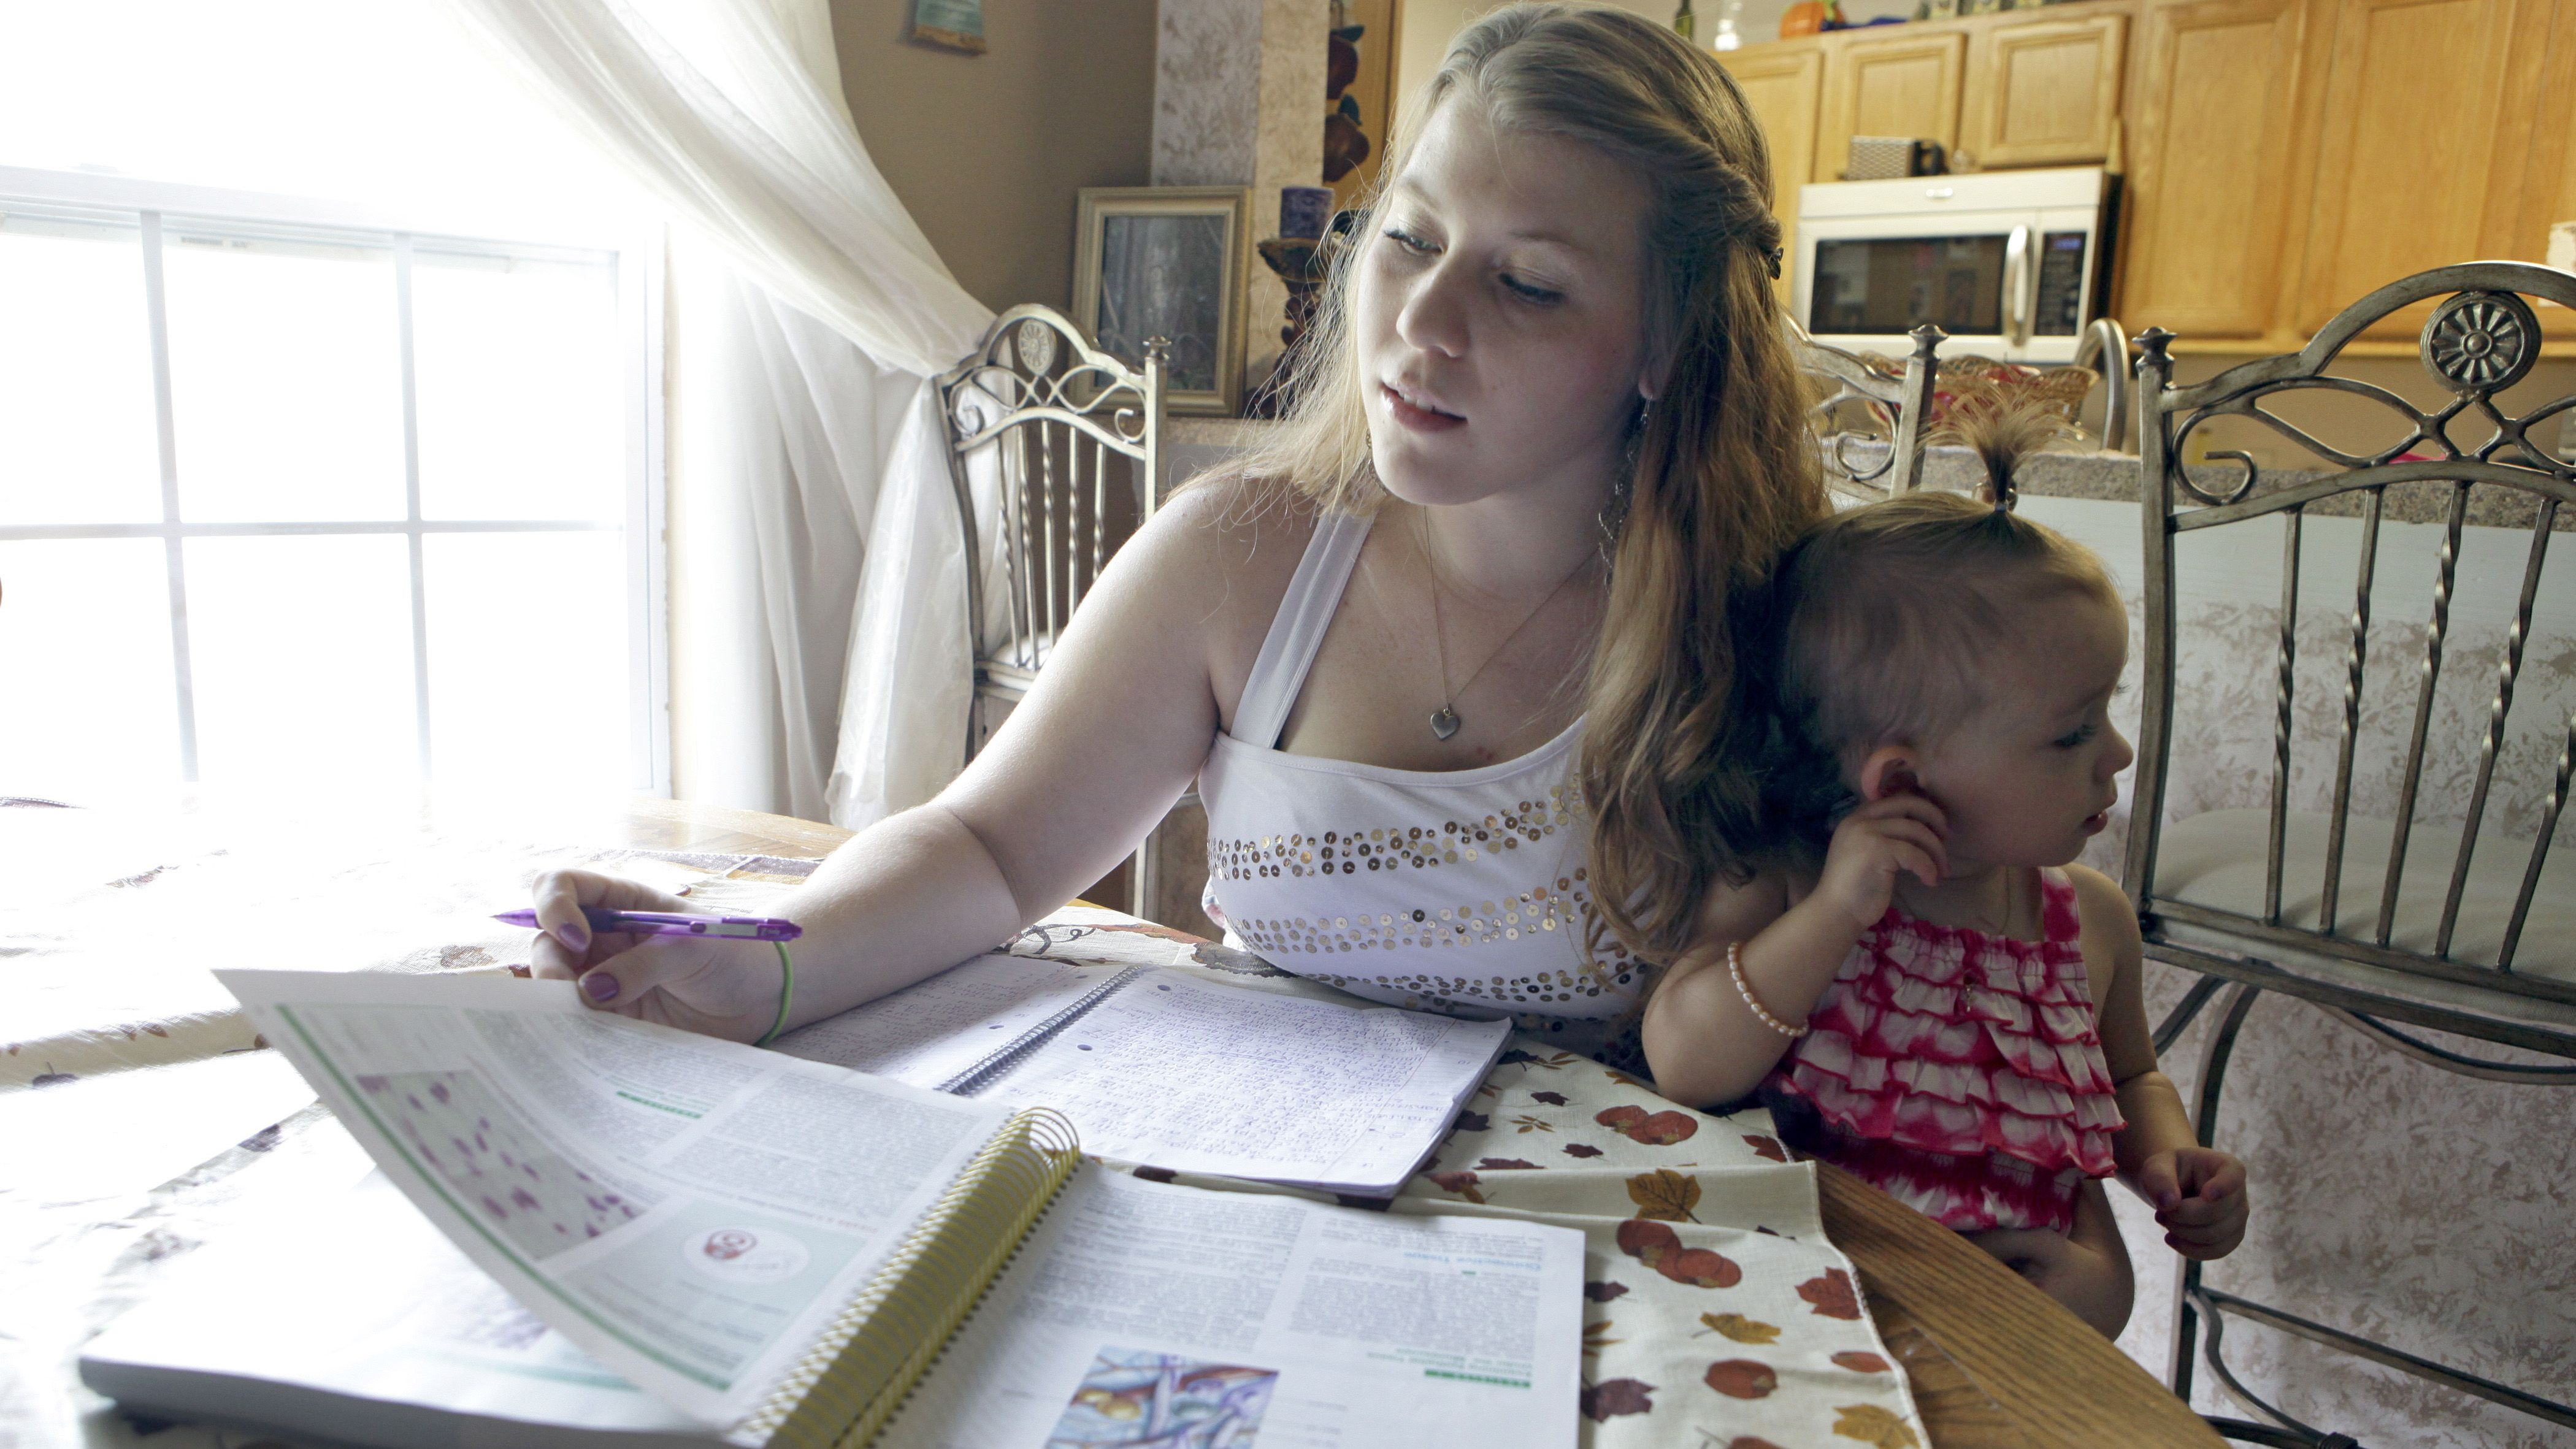 In this Monday, Sept. 10, 2012 photo, Kali Gonzalez, a student at St. John's State College studies while holding her daughter Kiah, 2, at their home in St. Augustine, Fla. A new report by the National Women's Law Center says offering pregnant teens extra support would ultimately save taxpayers money by helping them become financially independent and not dependent on welfare.(AP Photo/John Raoux)